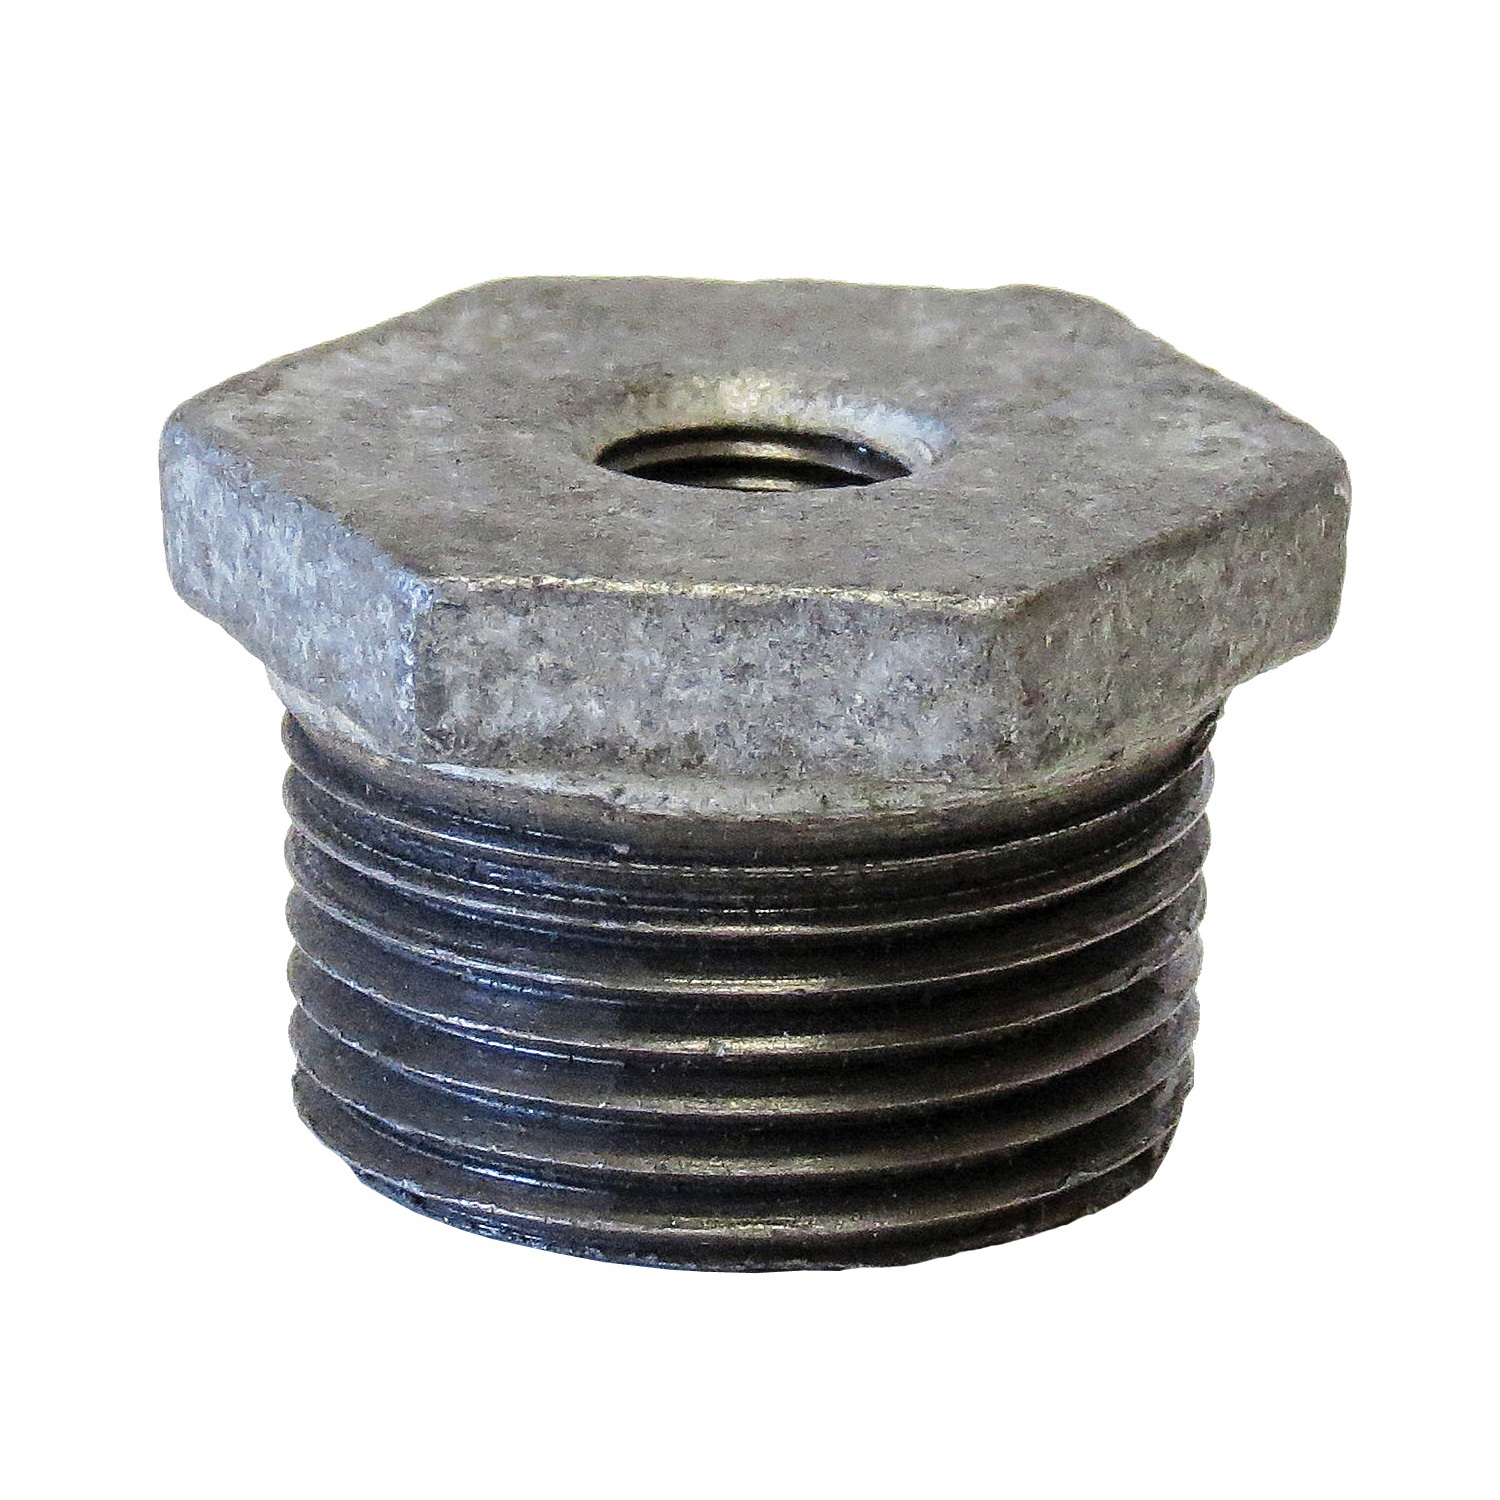 Anvil® 0319907044 Hex Head Pipe Bushing, 1-1/4 x 3/4 in Nominal, Cast Iron, Galvanized, Domestic